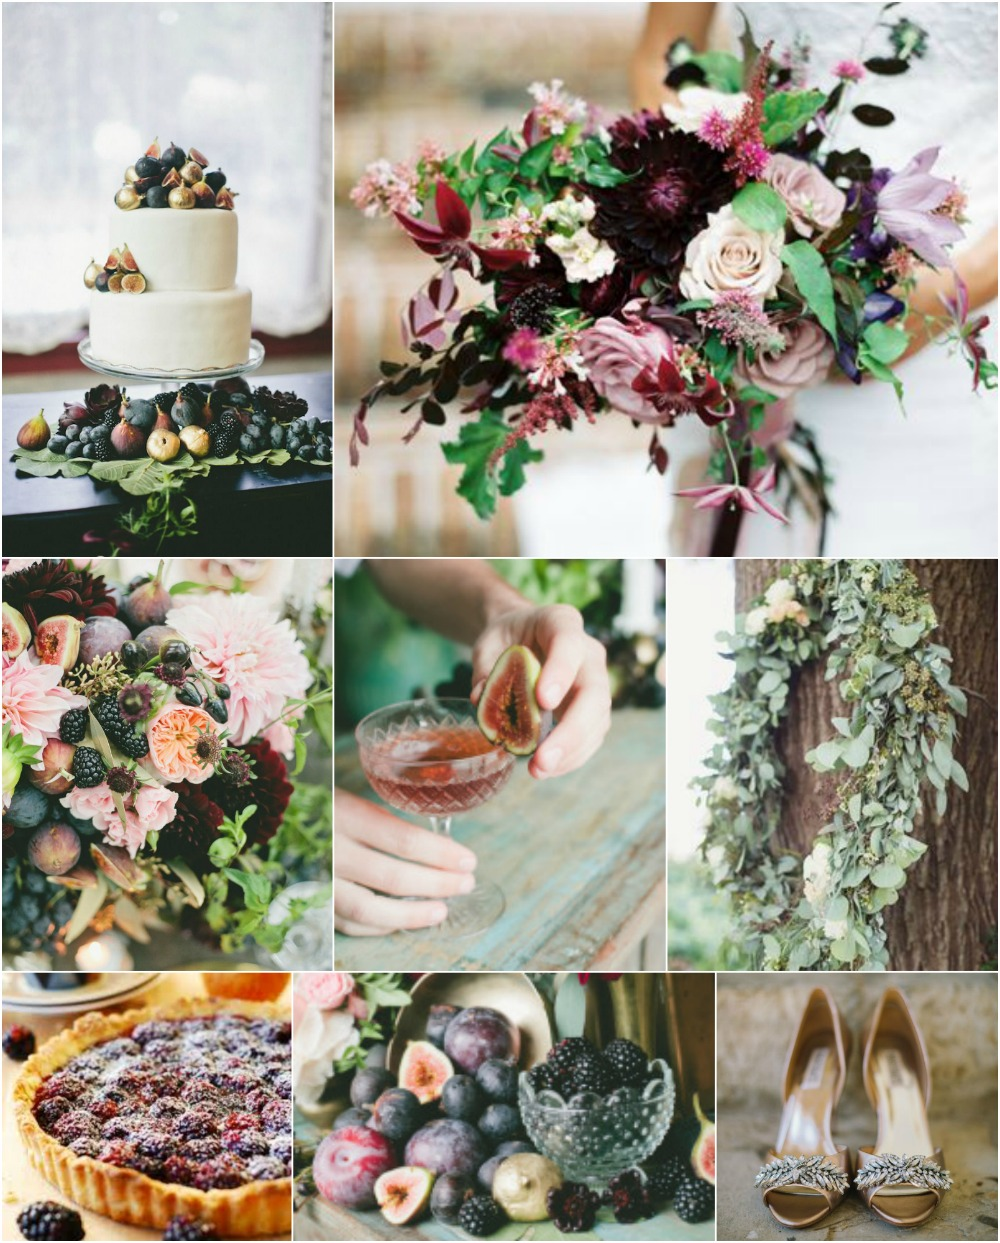 Niagara Vineyard Wedding_Fig Inspiration Board_blush_merlot_blackberry_fig_eucalyptus_bouquet_Niagara Wedding Florist_Niagara Weddings_photo